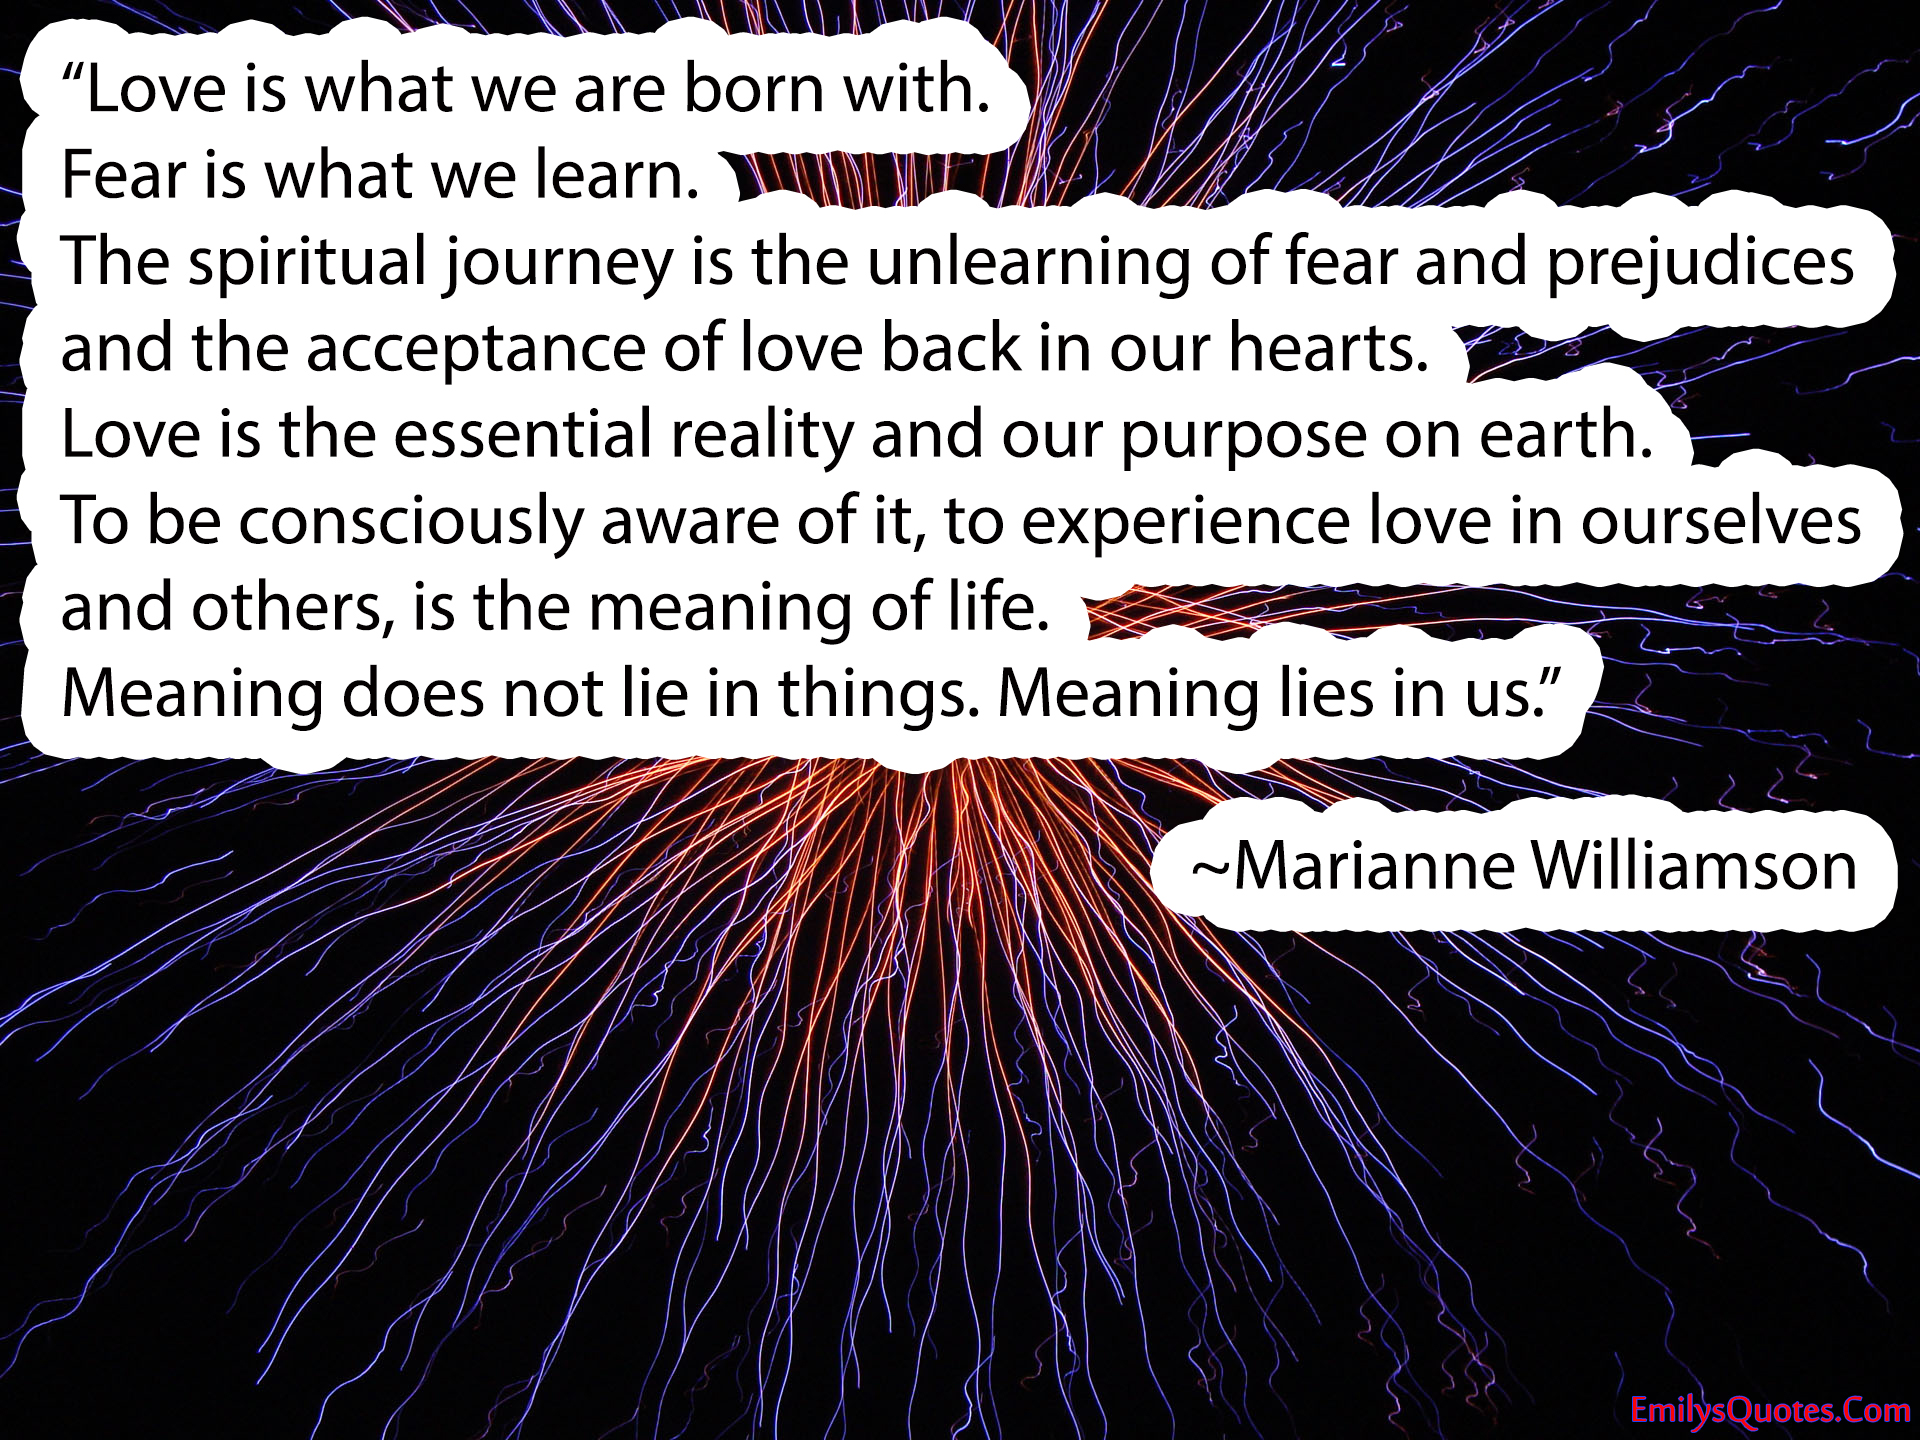 Marianne Williamson Love Quotes Love Is What We Are Born Withfear Is What We Learnthe